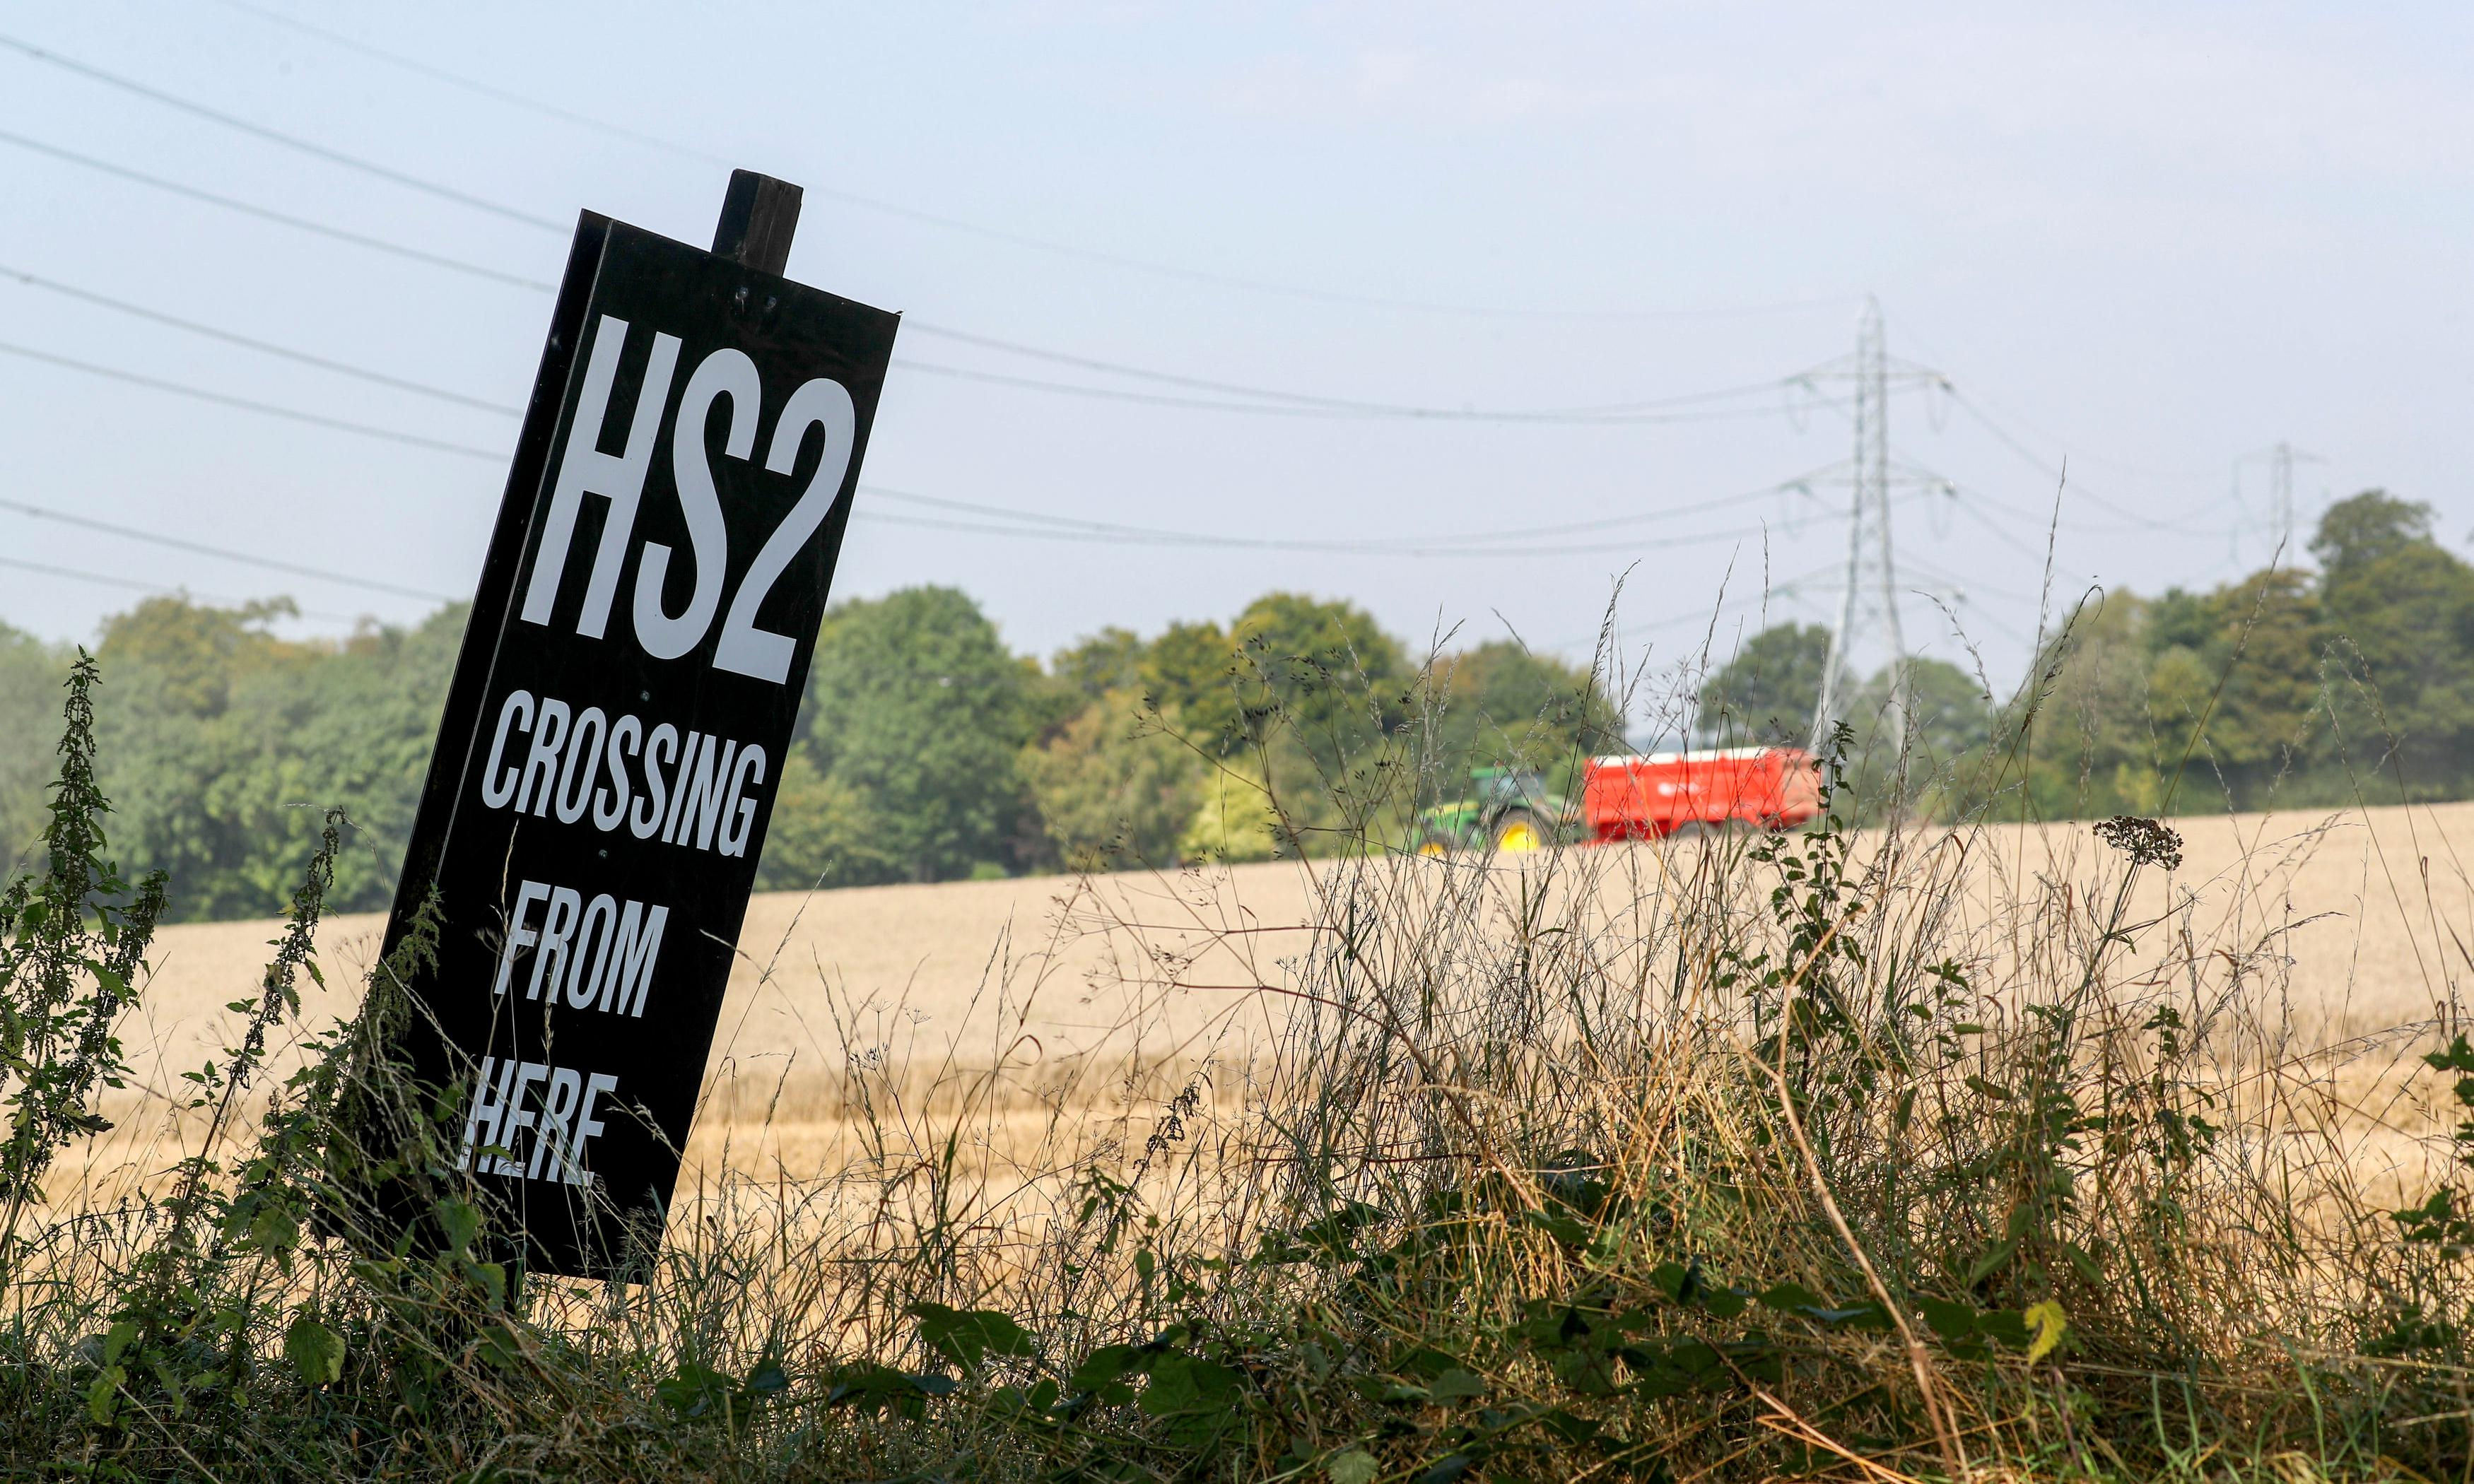 Co-author of leaked HS2 report demands his name is removed